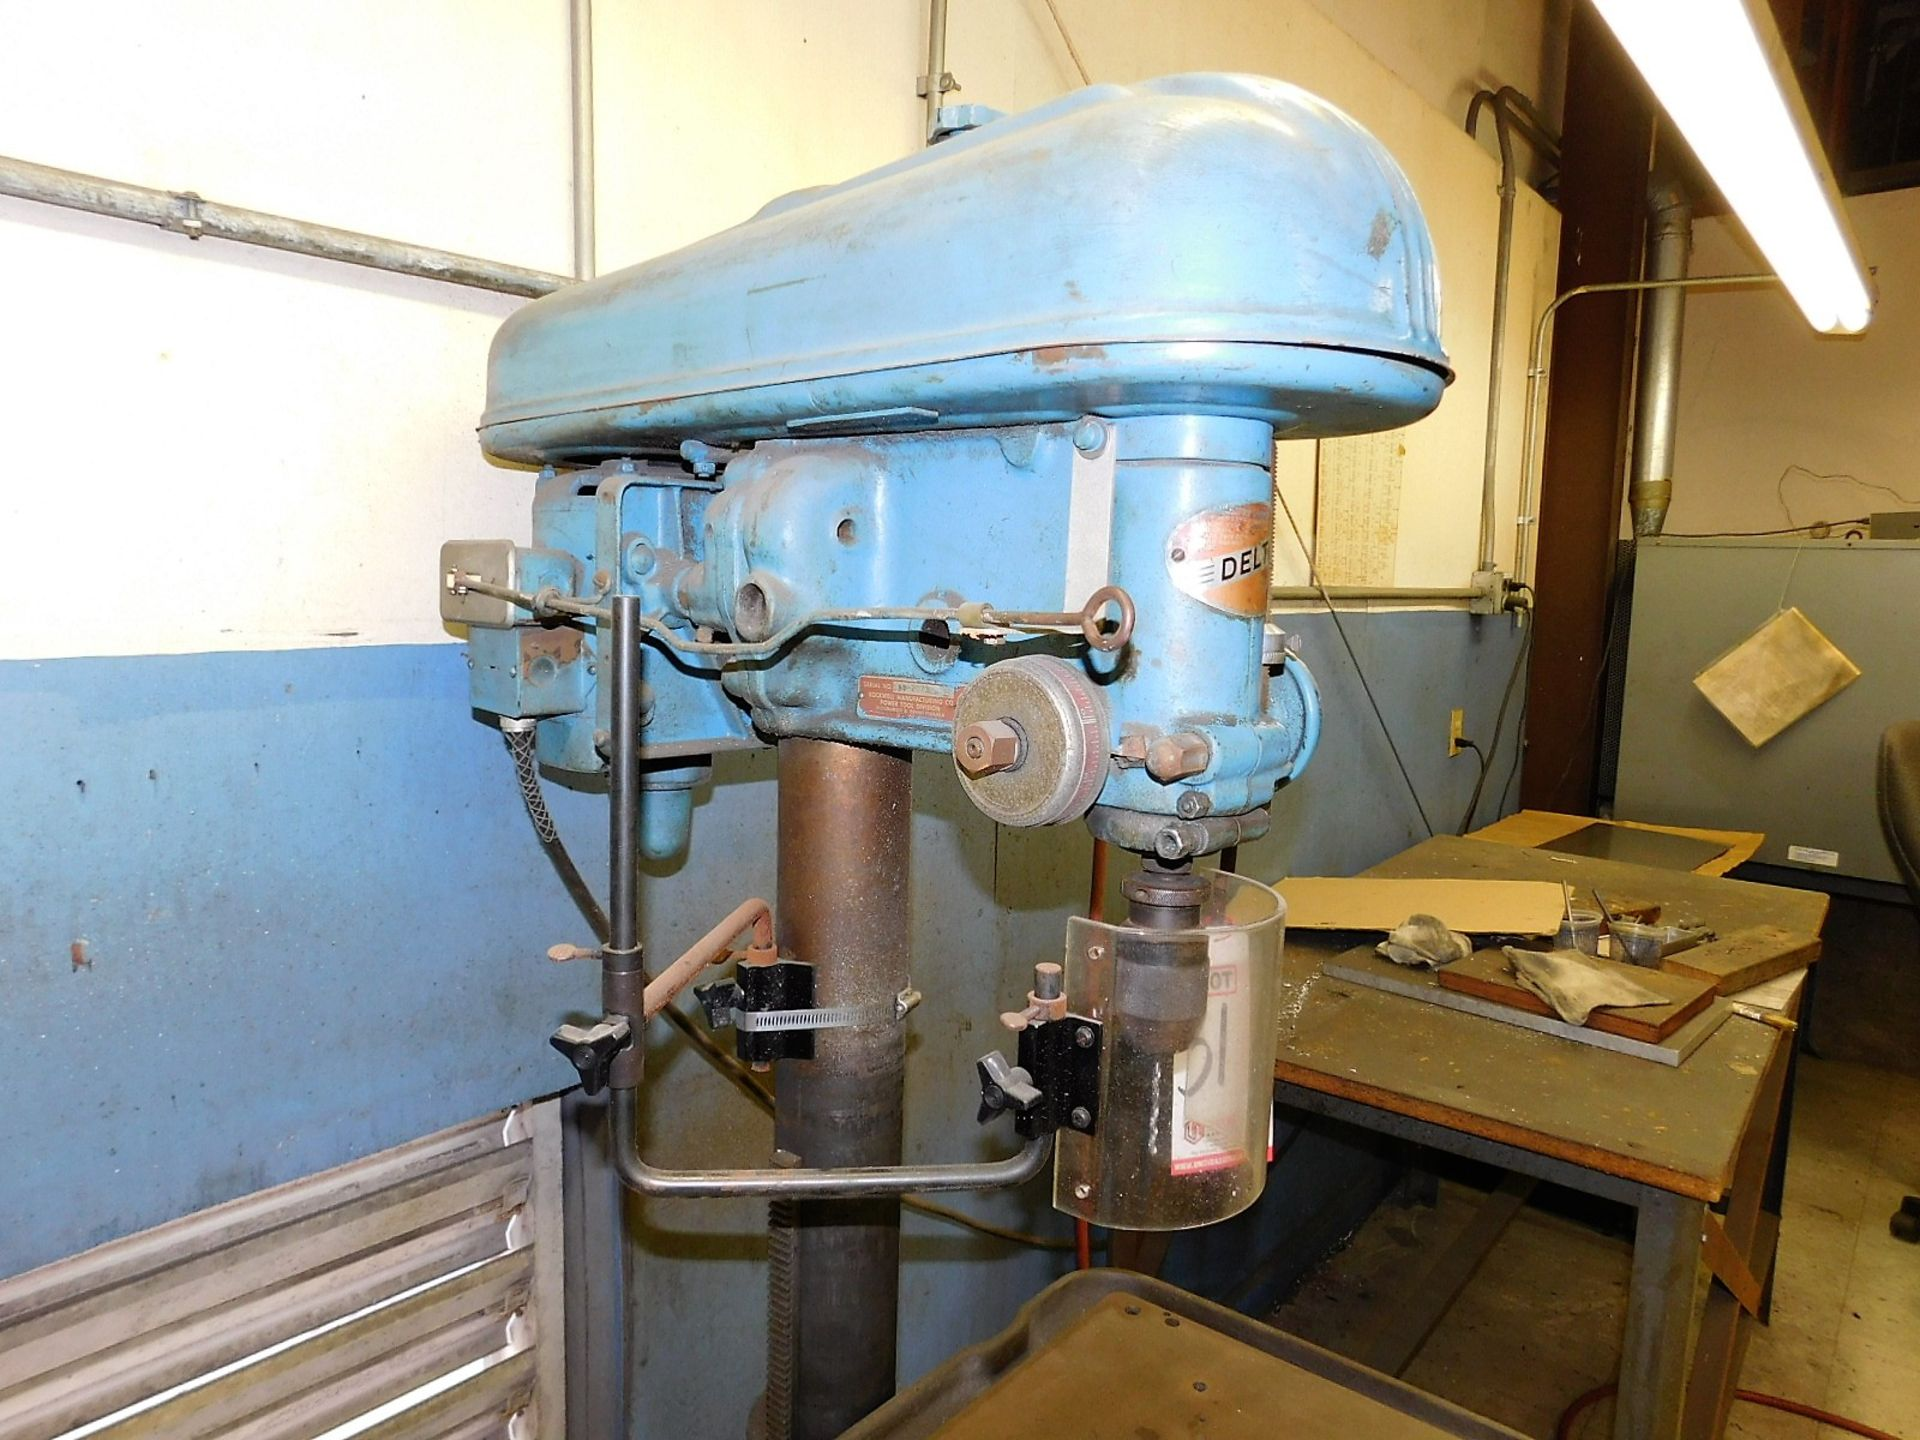 """Lot 31 - ROCKWELL DELTA 17"""" DRILL PRESS, S/N 126-2073, FLOOR STAND, SPEED CHUCK, VARIABLE SPEED"""